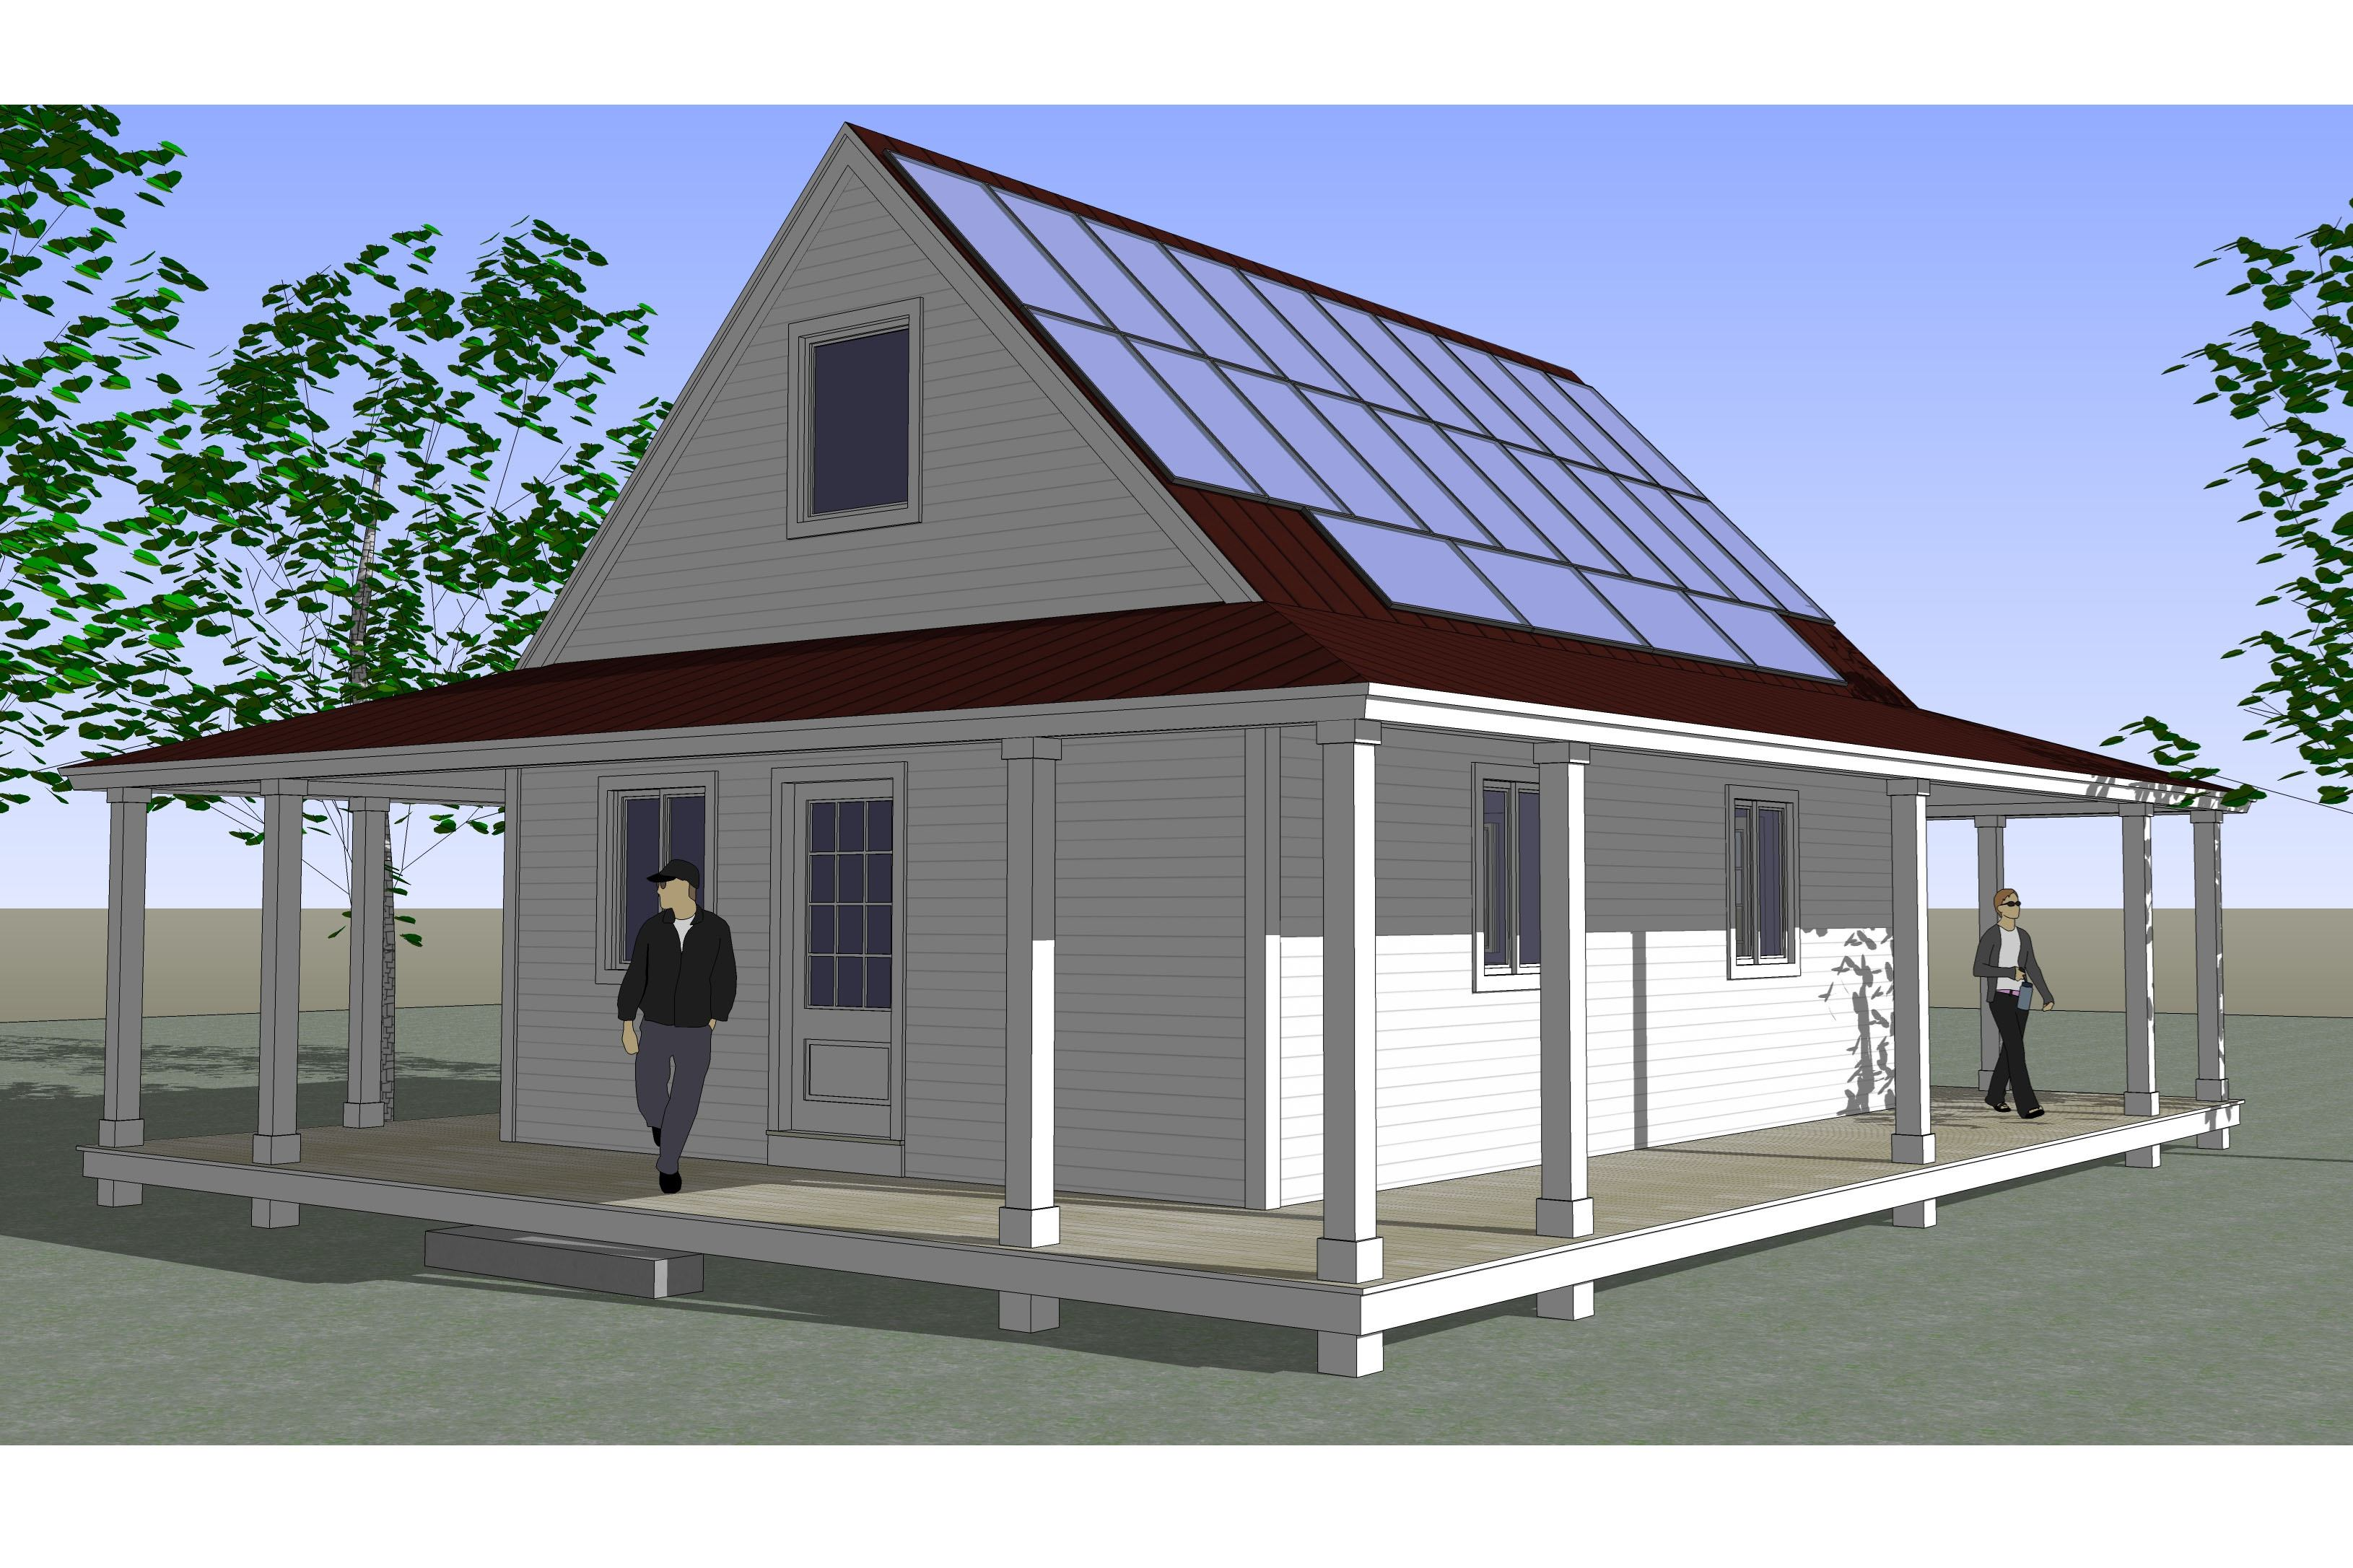 13 simple affordable energy efficient home plans ideas for Energy efficient house plans